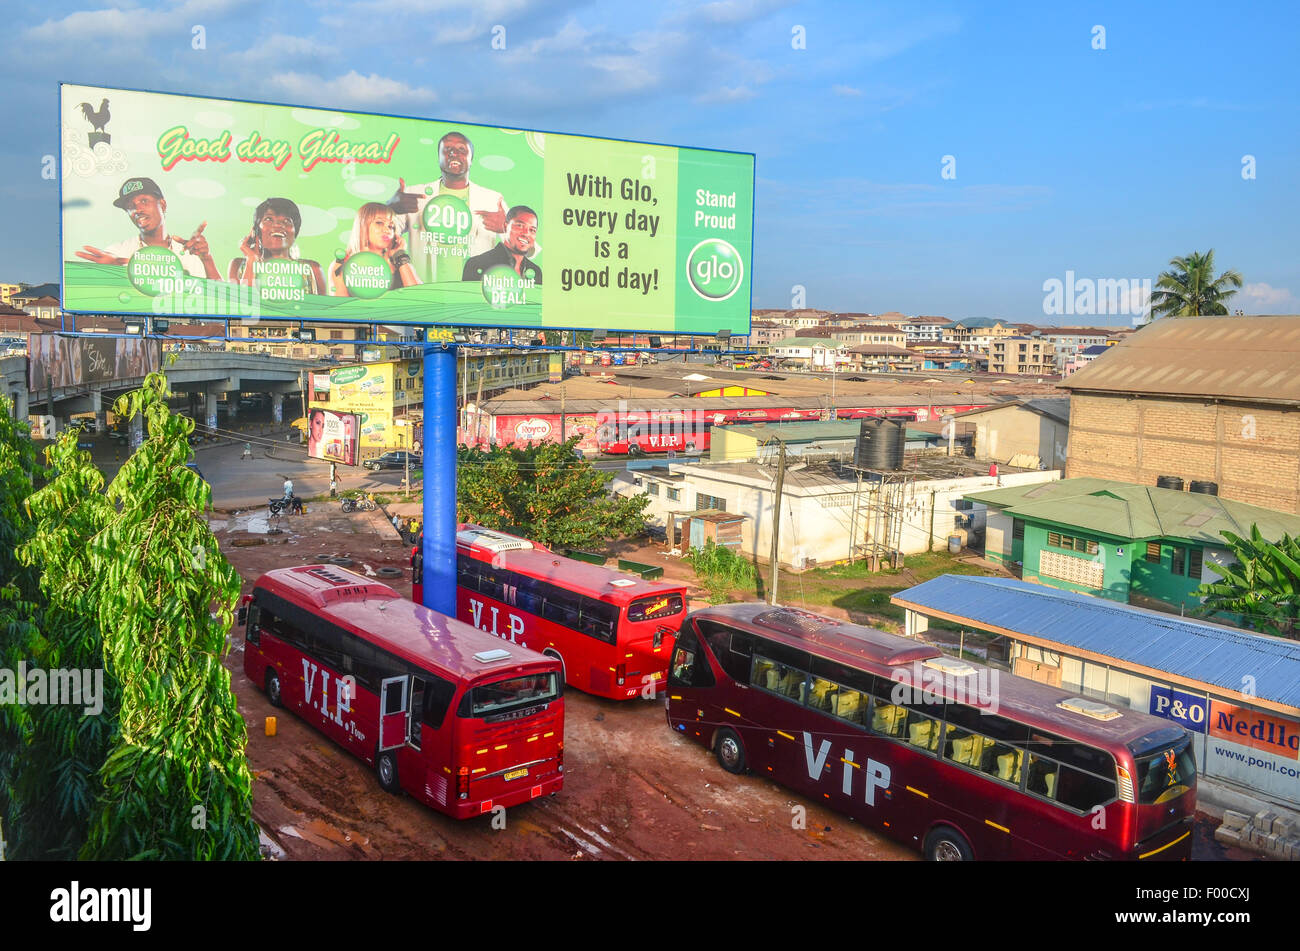 Aerial view of Kumasi, Ghana, with an ad of a cellphone operator - Stock Image